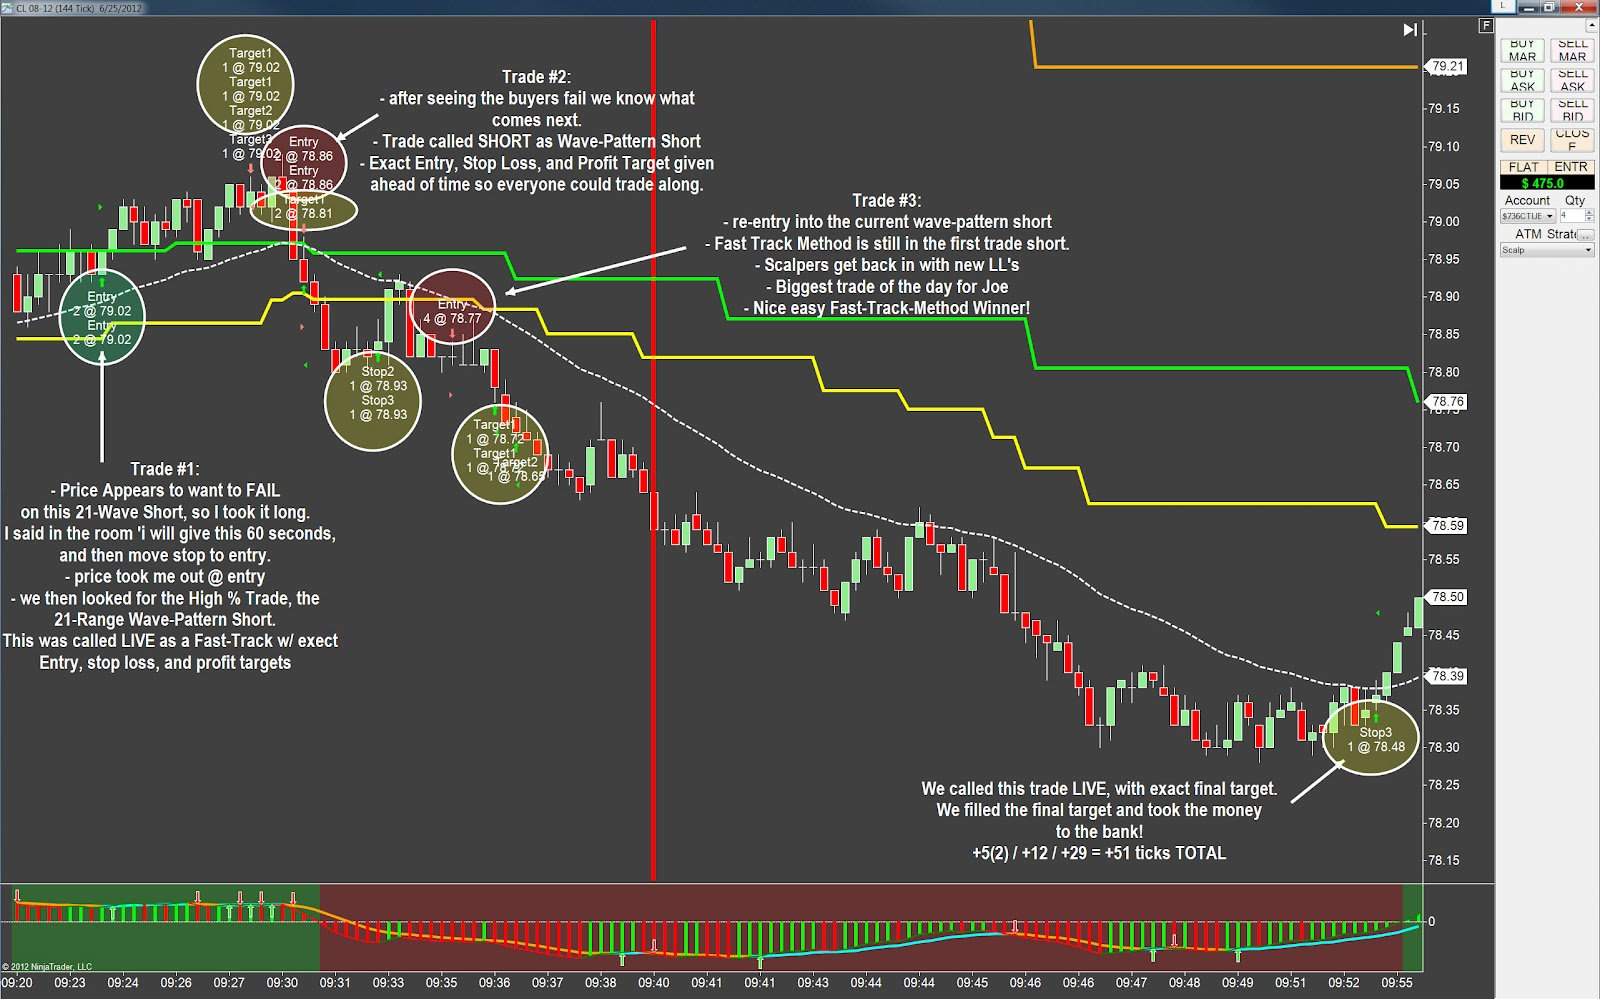 Oil day trading strategies